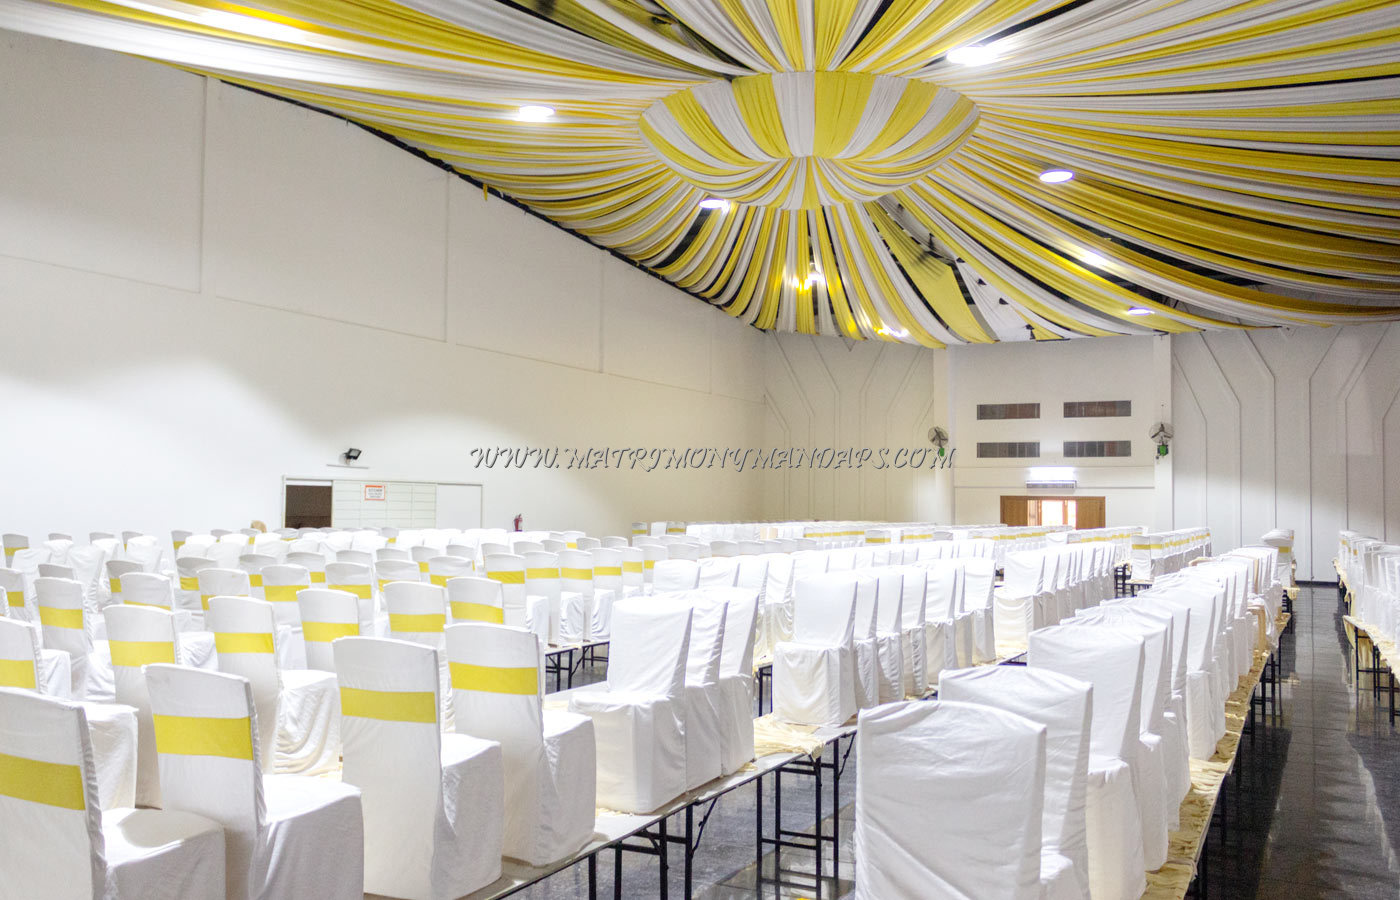 Find the availability of the Sri Convention Centre (A/C) in Banashankari, Bangalore and avail special offers